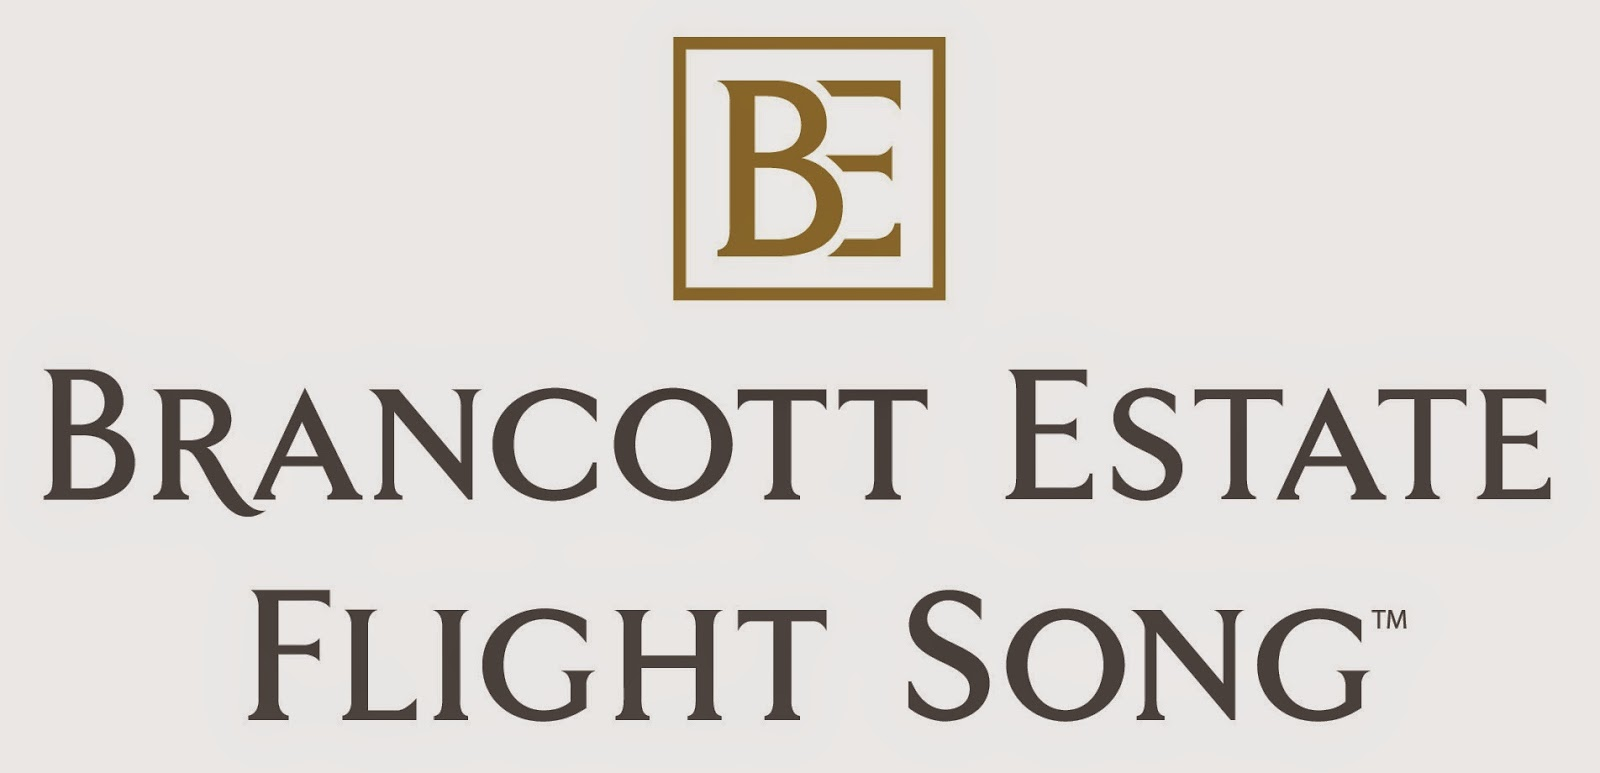 Brancott Estate Flight Song logo